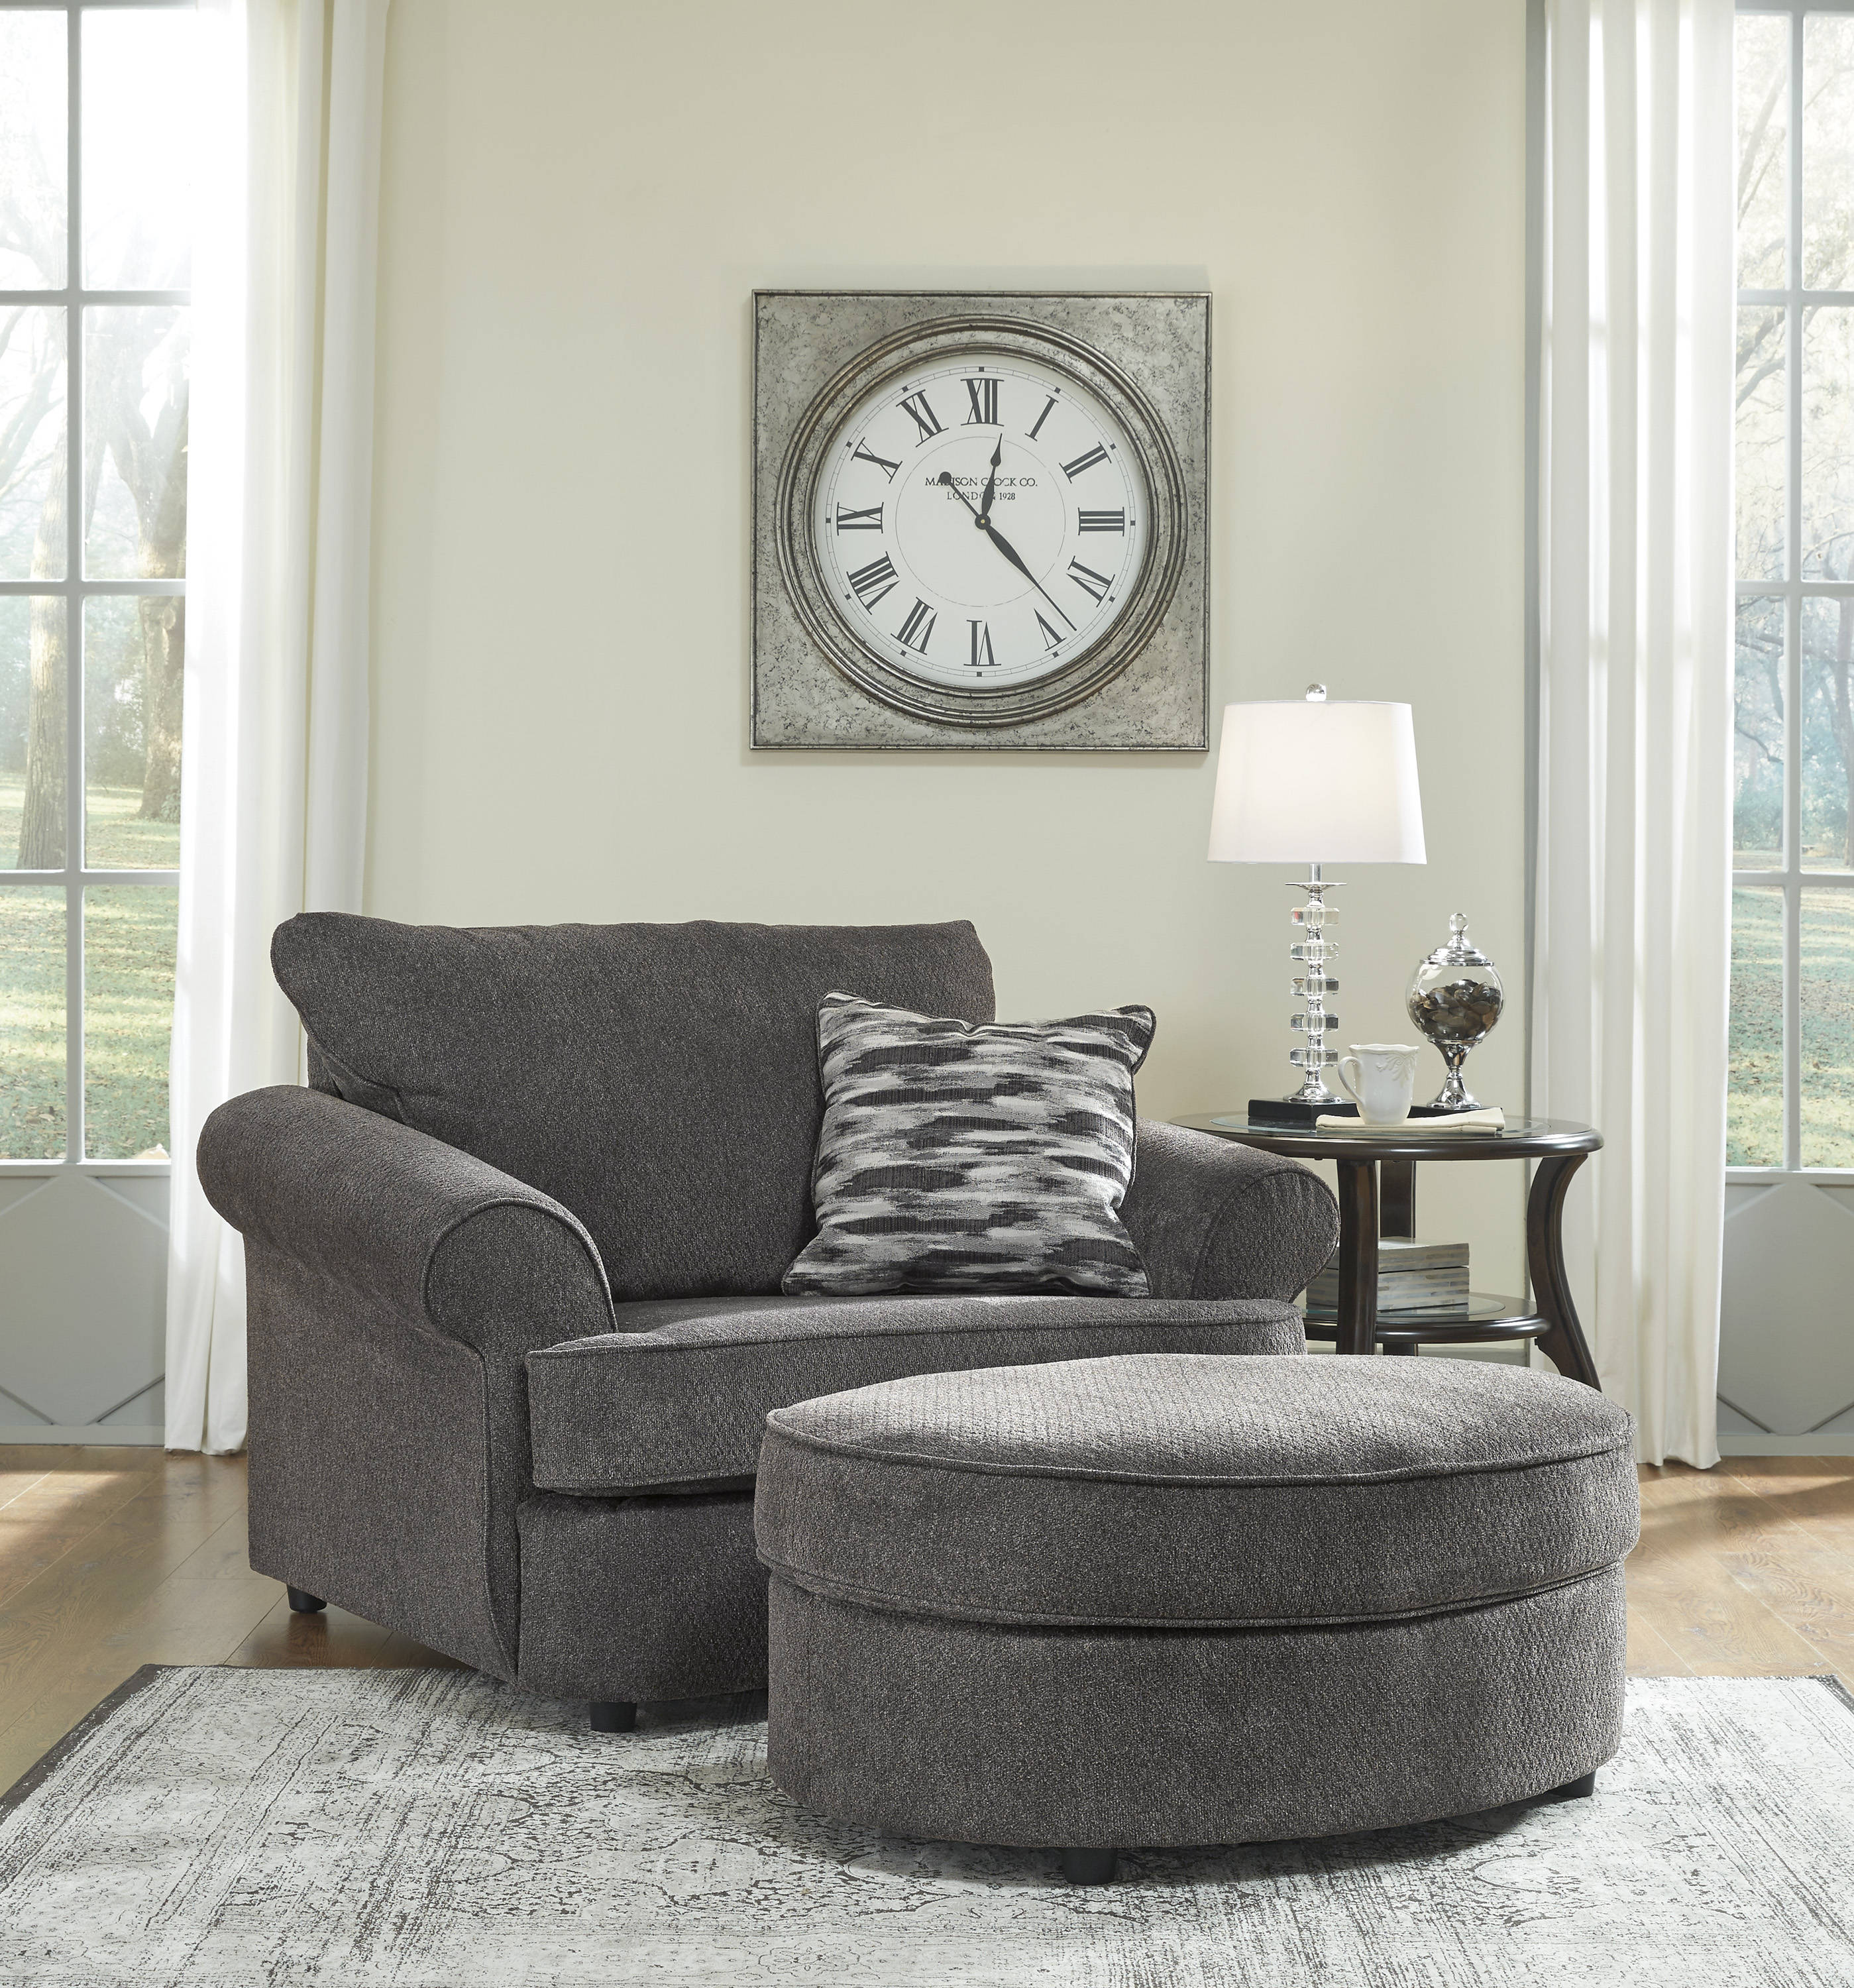 Sale Ashley Furniture: Ashley Furniture Allouette Chair And Ottomans Set